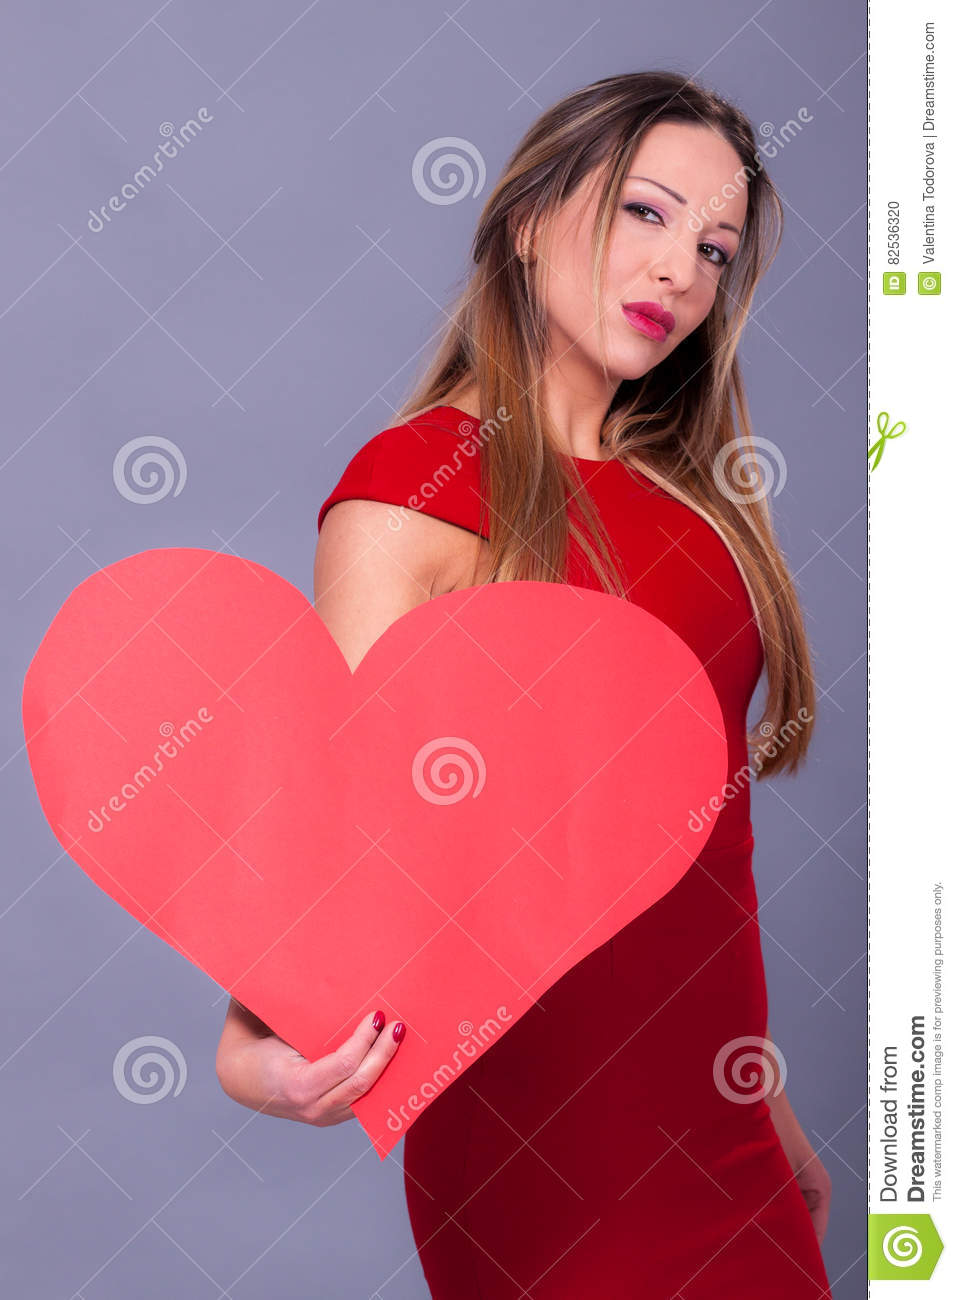 Woman Wearing Red Dress Holding Big Heart Sign Love Symbol Stock